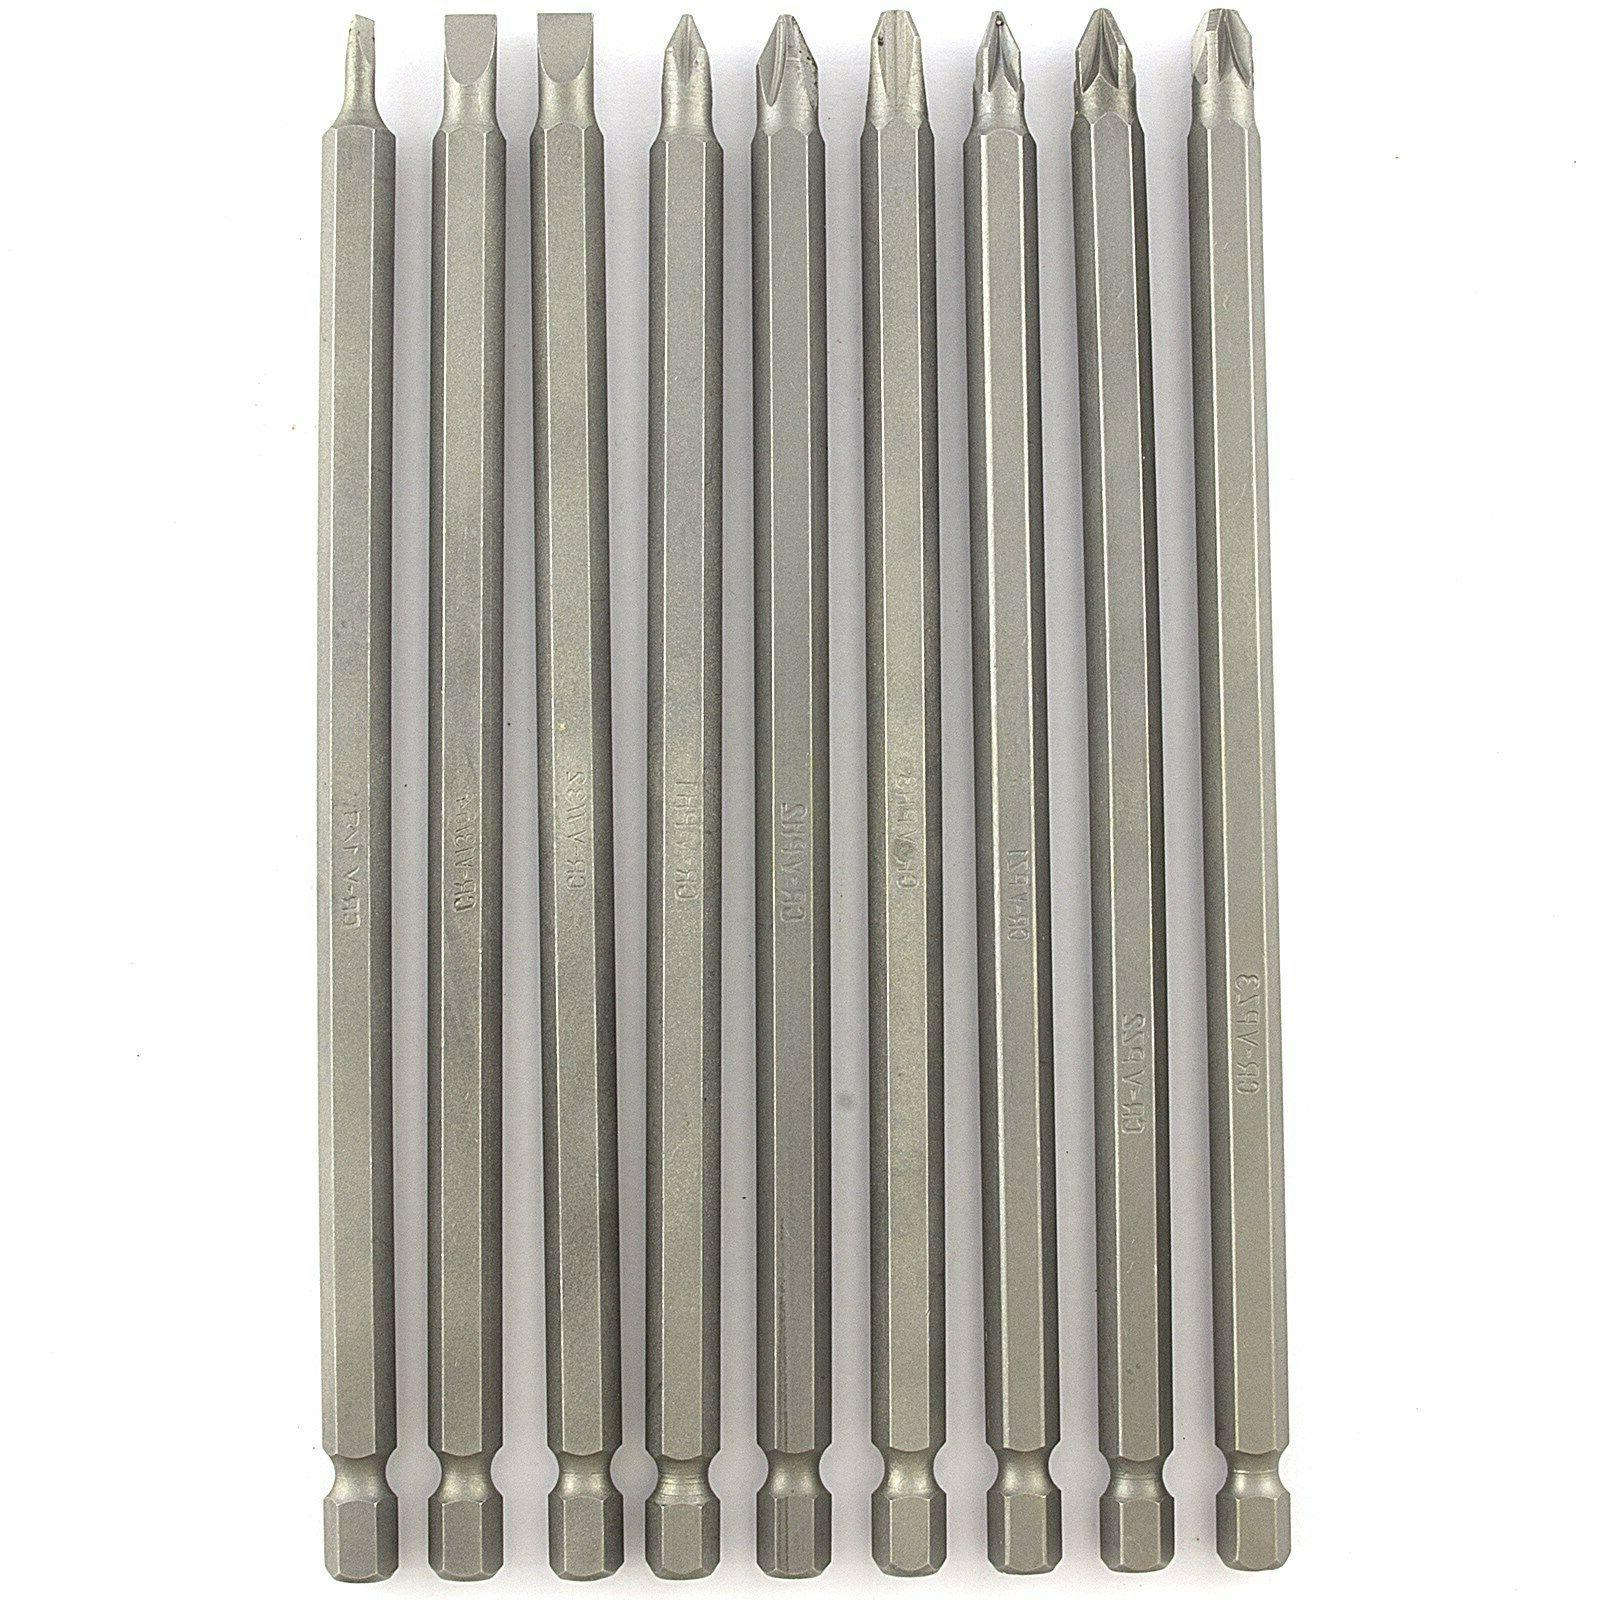 9 PIECE MAGNETIC DRILL SET